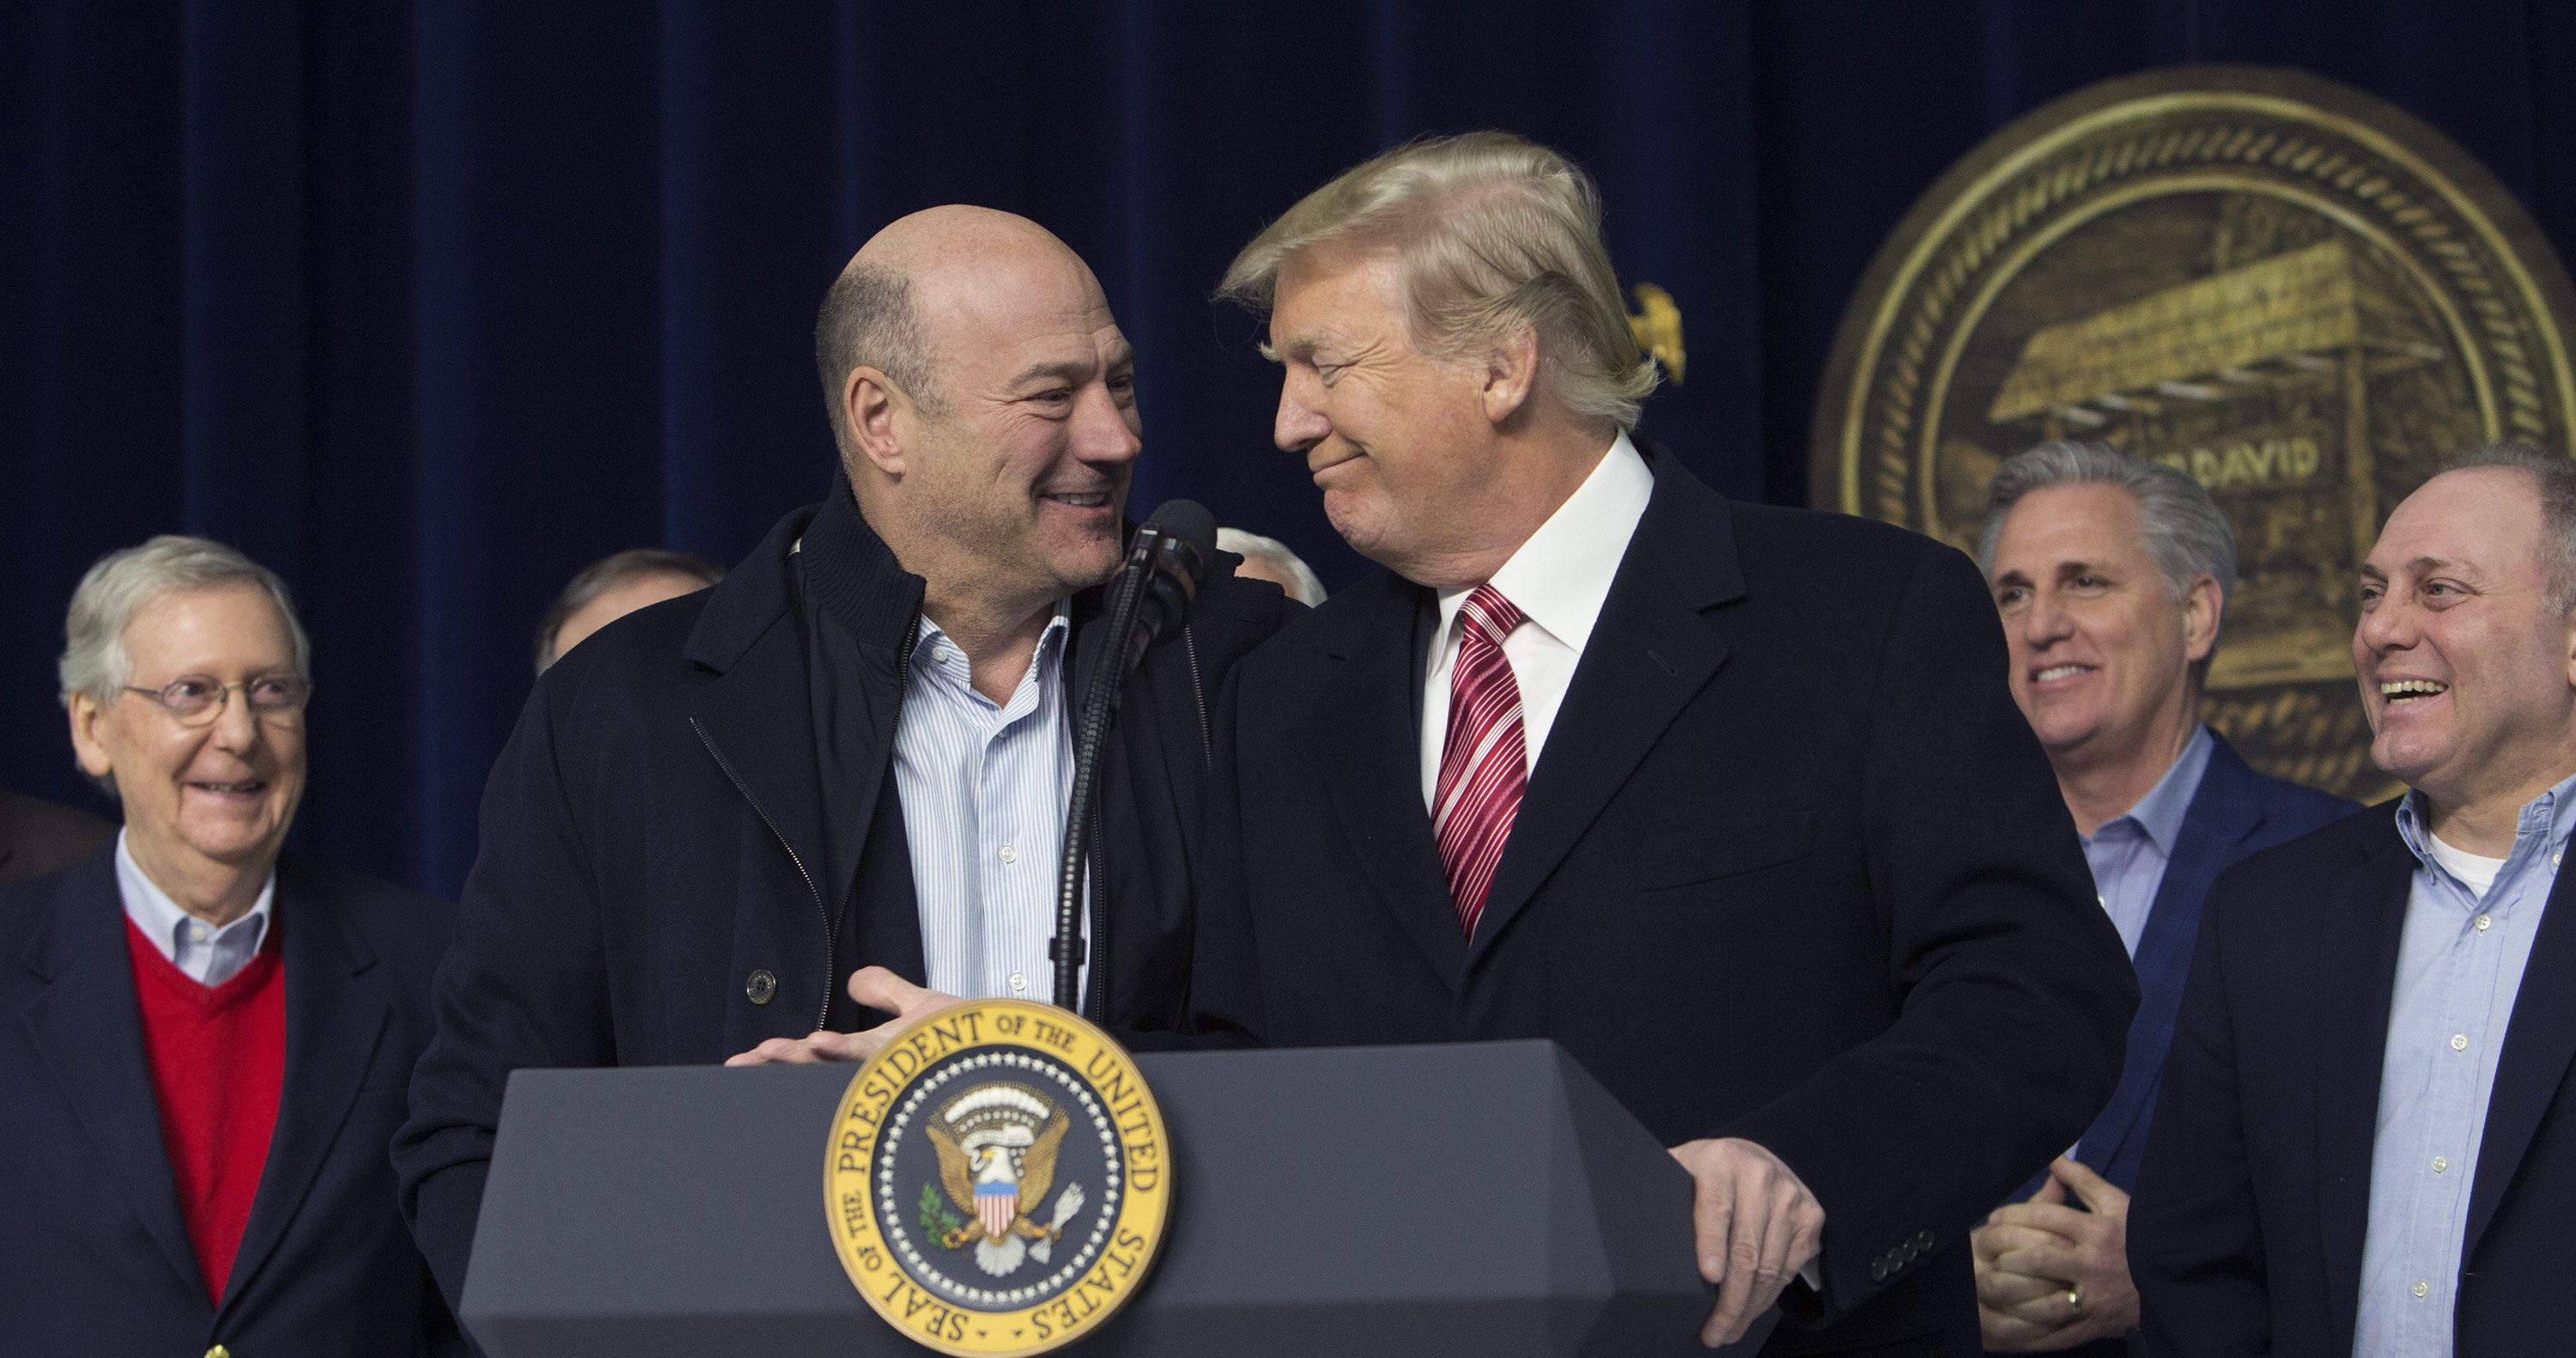 U.S. President Donald Trump, center right, and Gary Cohn, director of the U.S. National Economic Council, center left, smile during a press conference with cabinet members and Republican leadership at Camp David in Thurmont, Maryland, U.S., on Saturday, Jan. 6, 2018. Donald Trump said hes a 'very stable genius,' a day after a new book about the president's first year in the White House -- dismissed by Trump as 'fiction' -- claimed that many of his top aides and confidants consider him unfit to hold office. Photographer: Chris Kleponis/Pool via Bloomberg